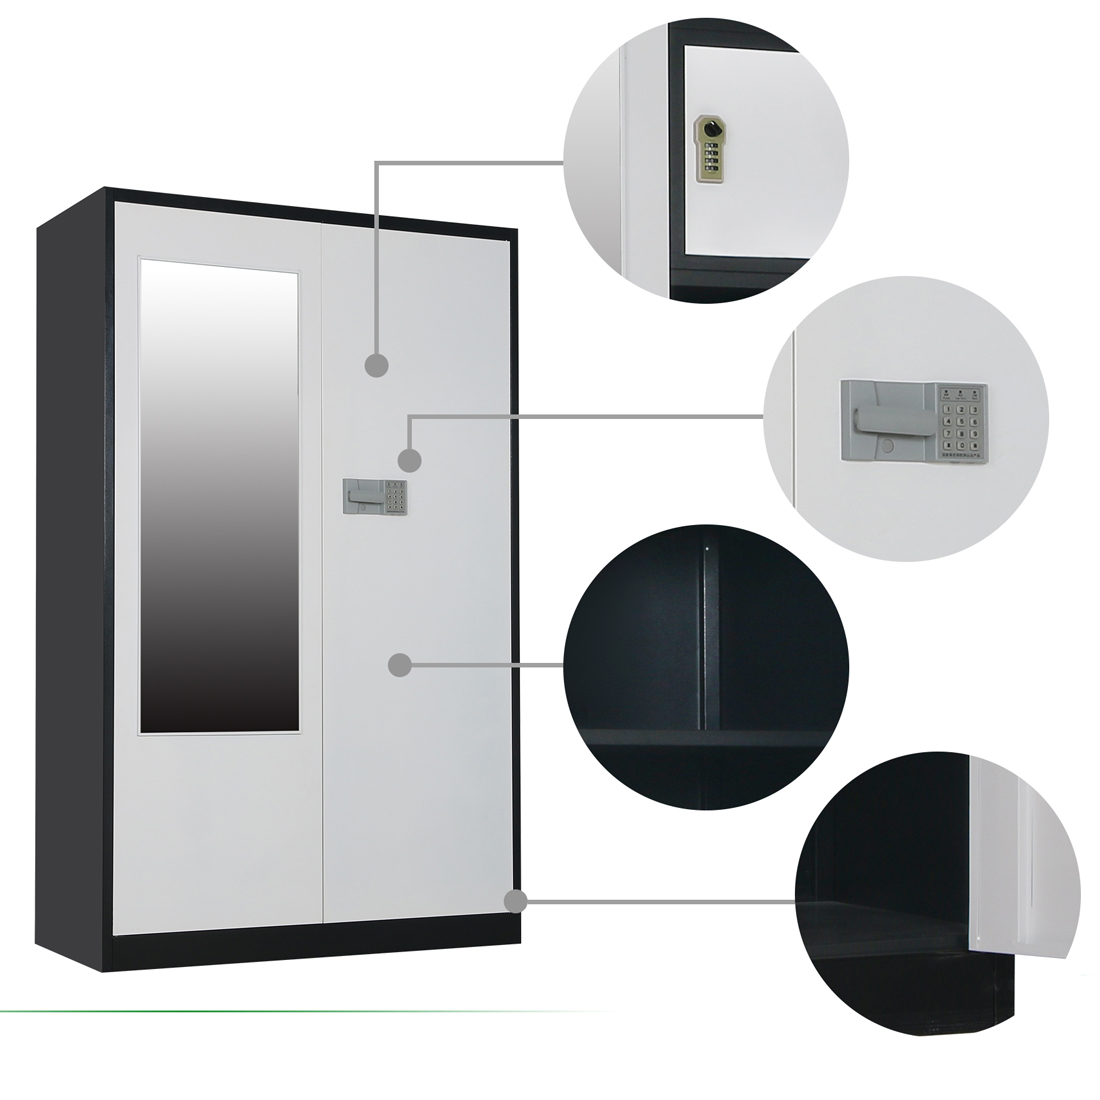 Electronic Coded Lock Metal Wardrobe 2.jpg